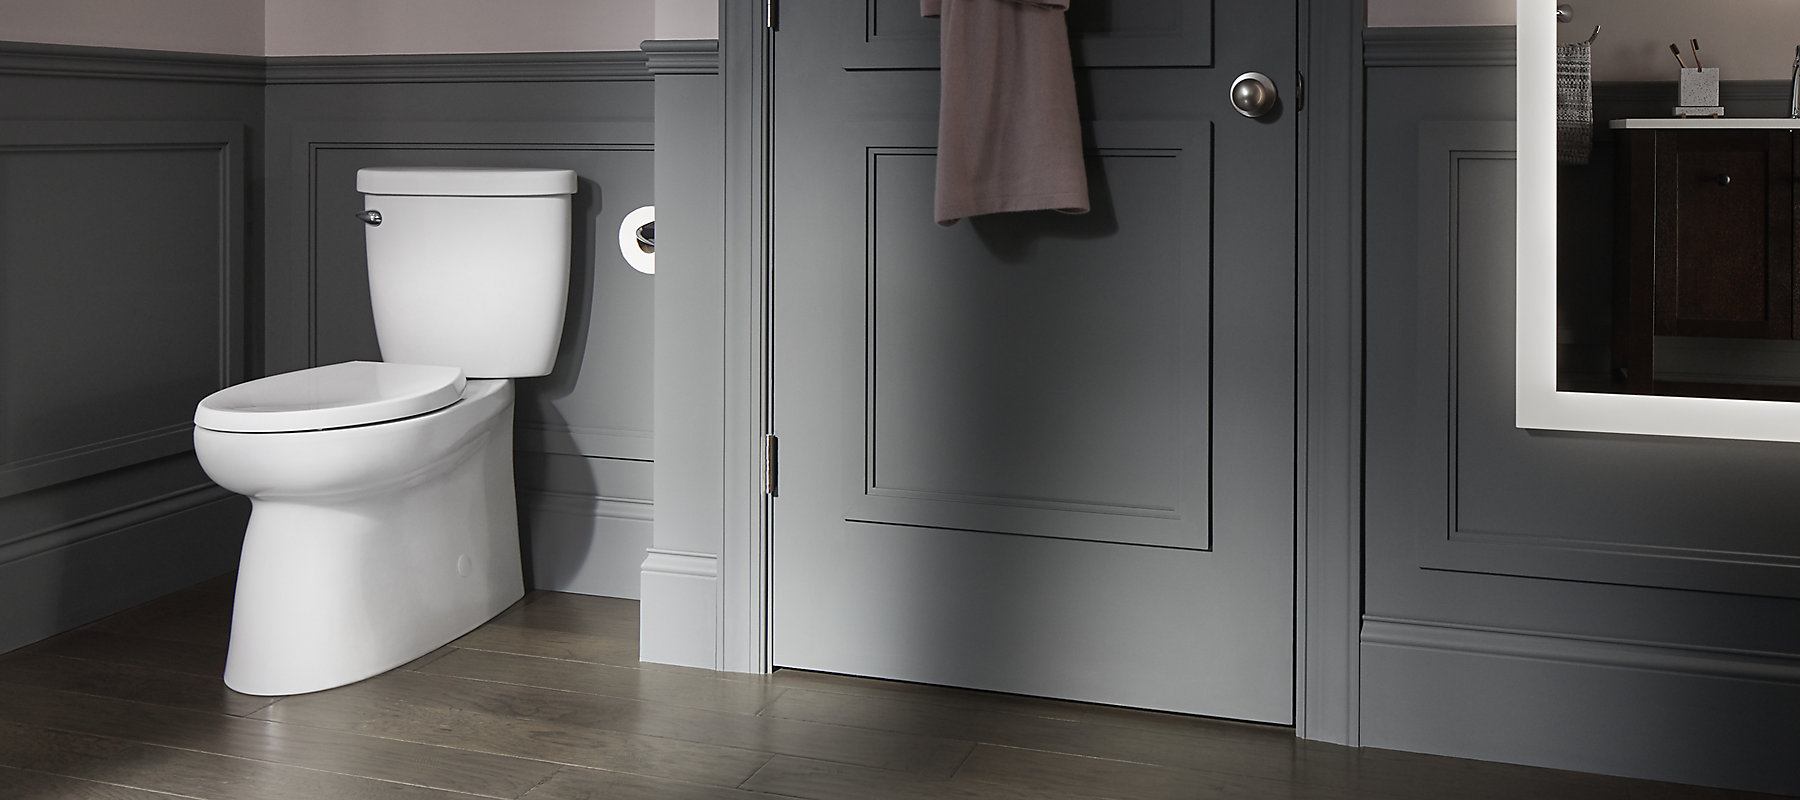 Sterling Plumbing | Bathroom and Kitchen products, Shower